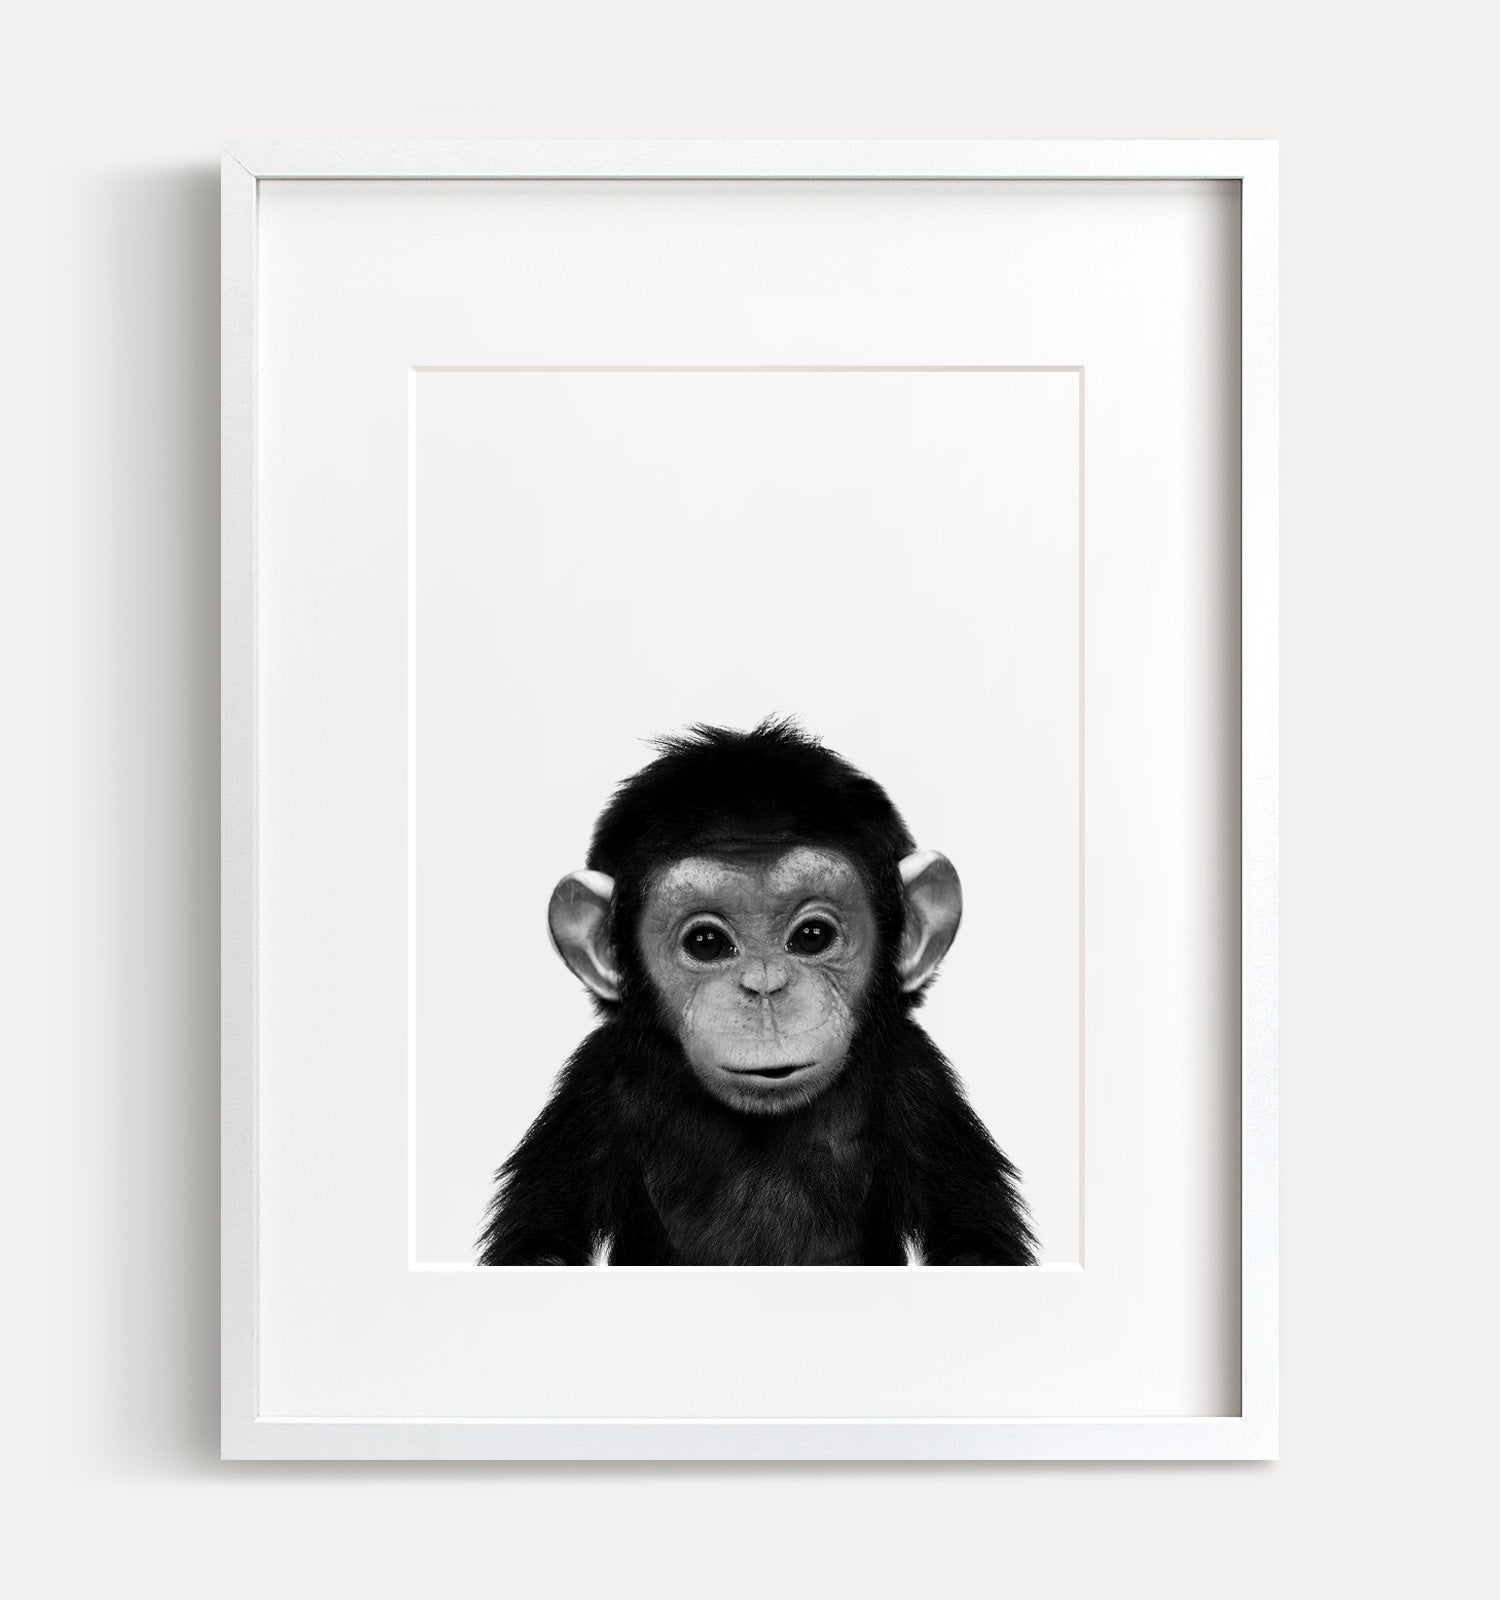 Baby Chimpanzee Print - Black and White - The Crown Prints